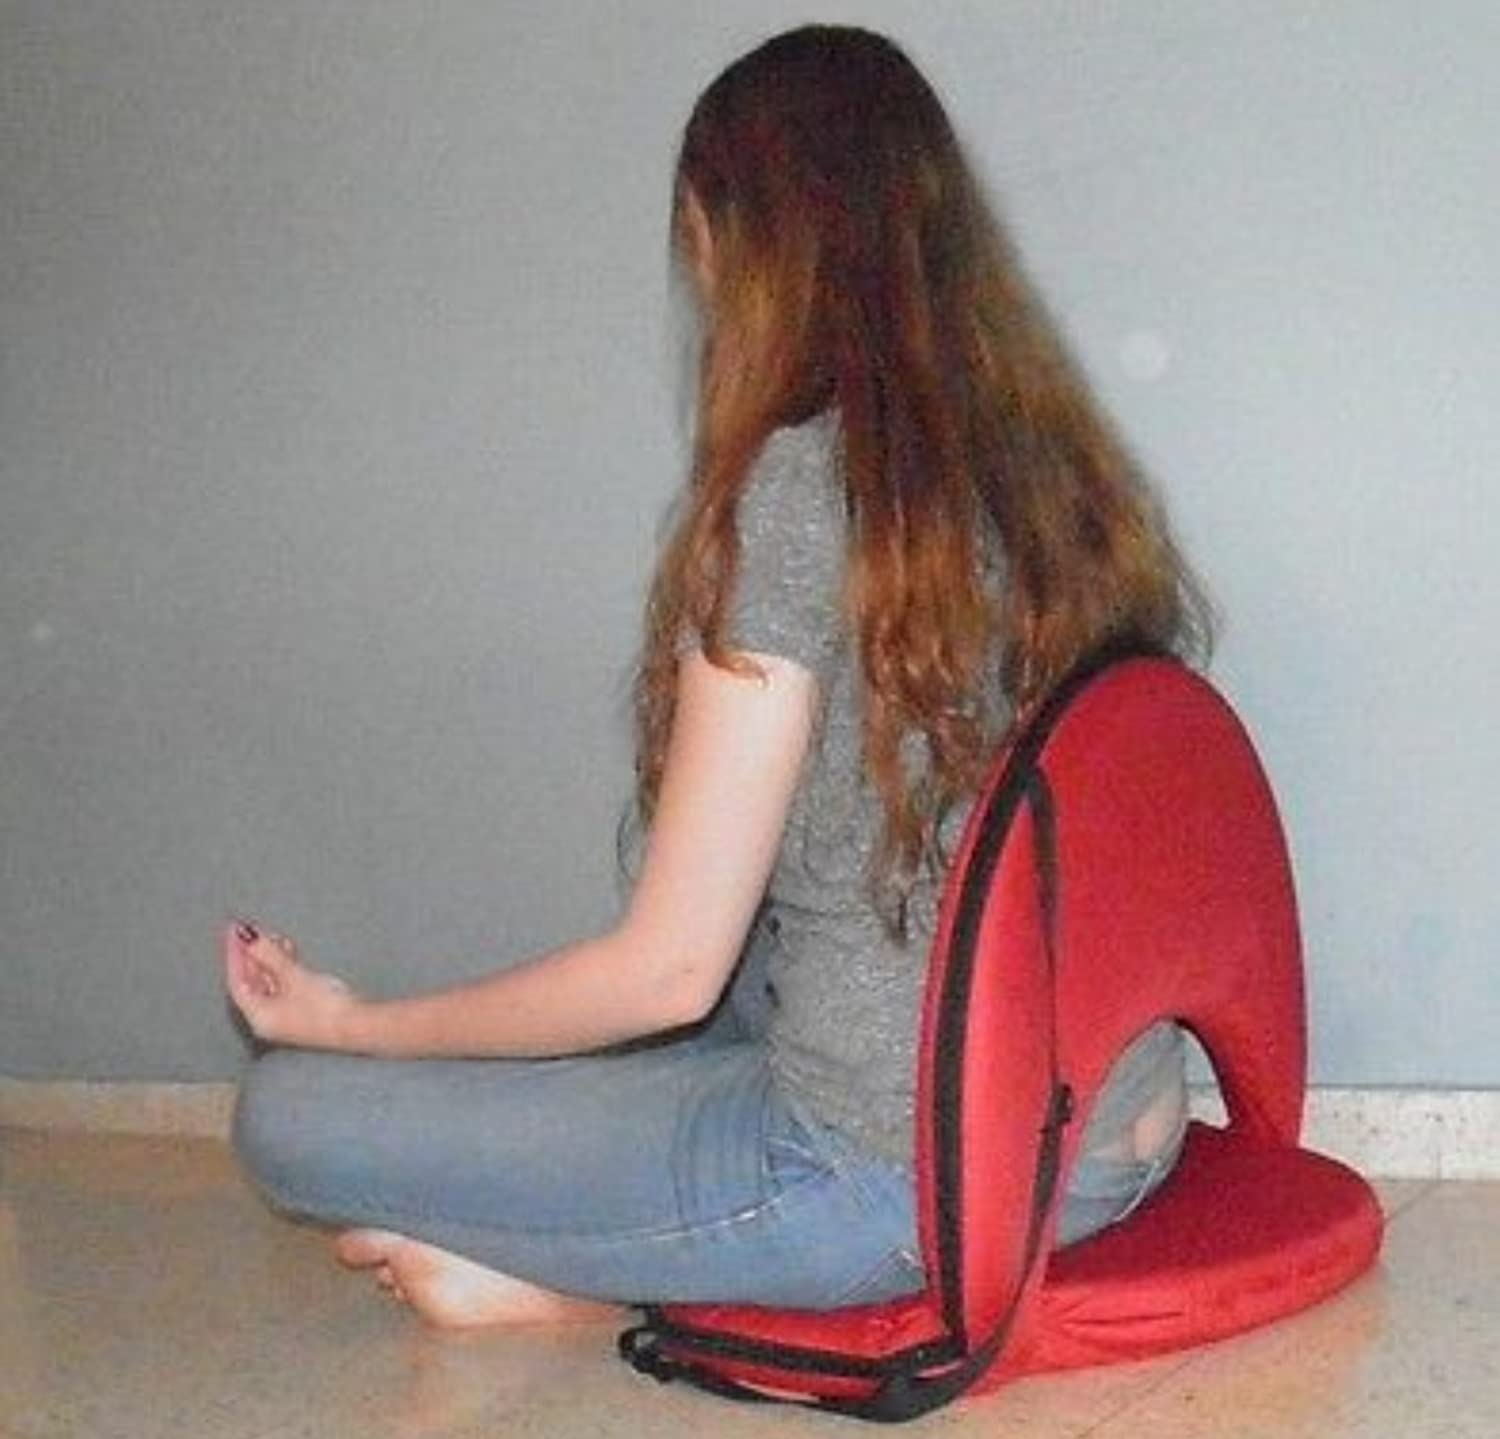 Red chair legless fold Meditation Vipassana stadium bleacher yoga lower back support